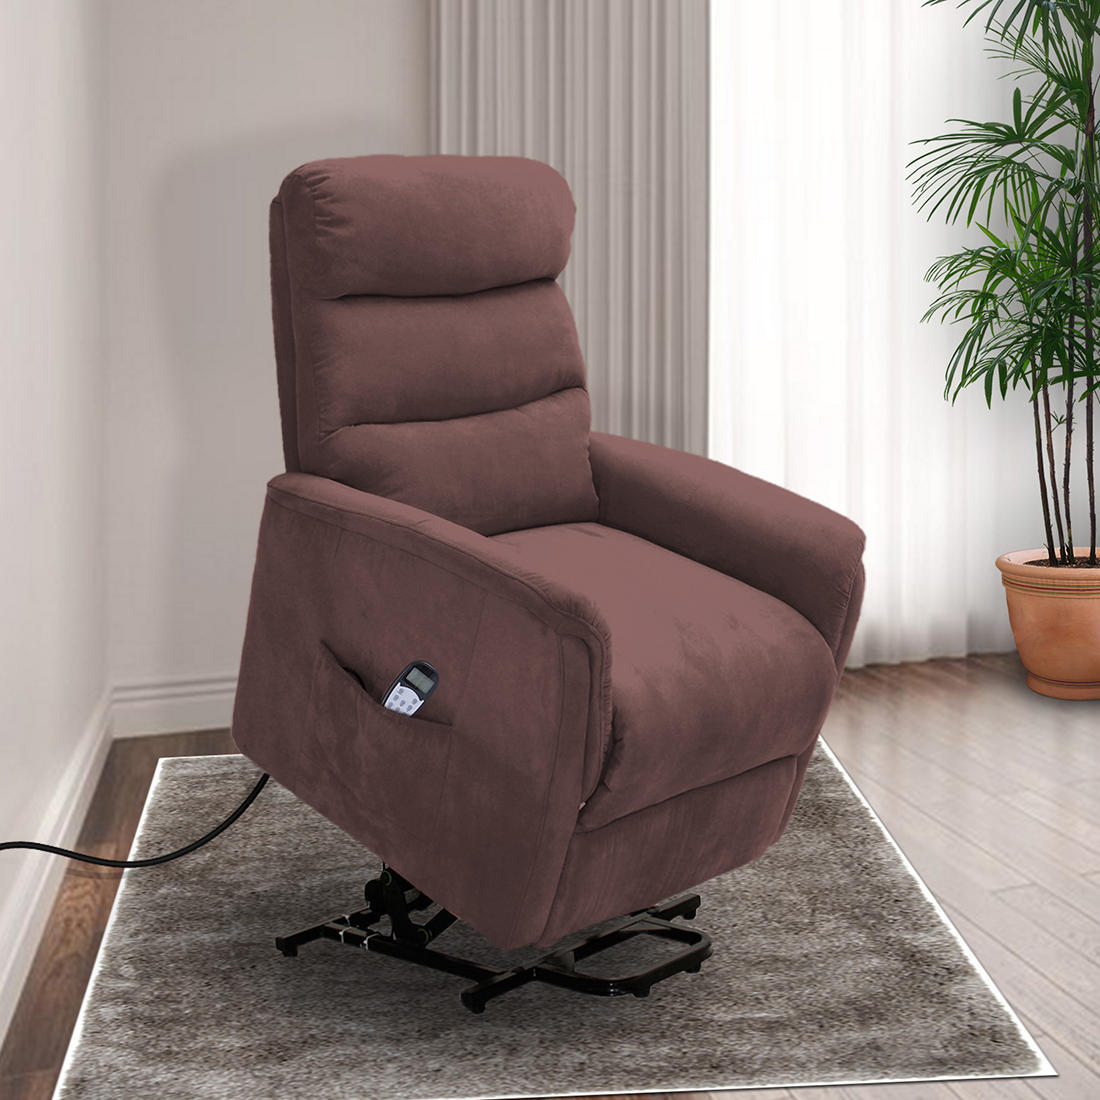 Enjoyable Lifesmart Lift Chair Recliner With Heat And Massage Brown Pabps2019 Chair Design Images Pabps2019Com